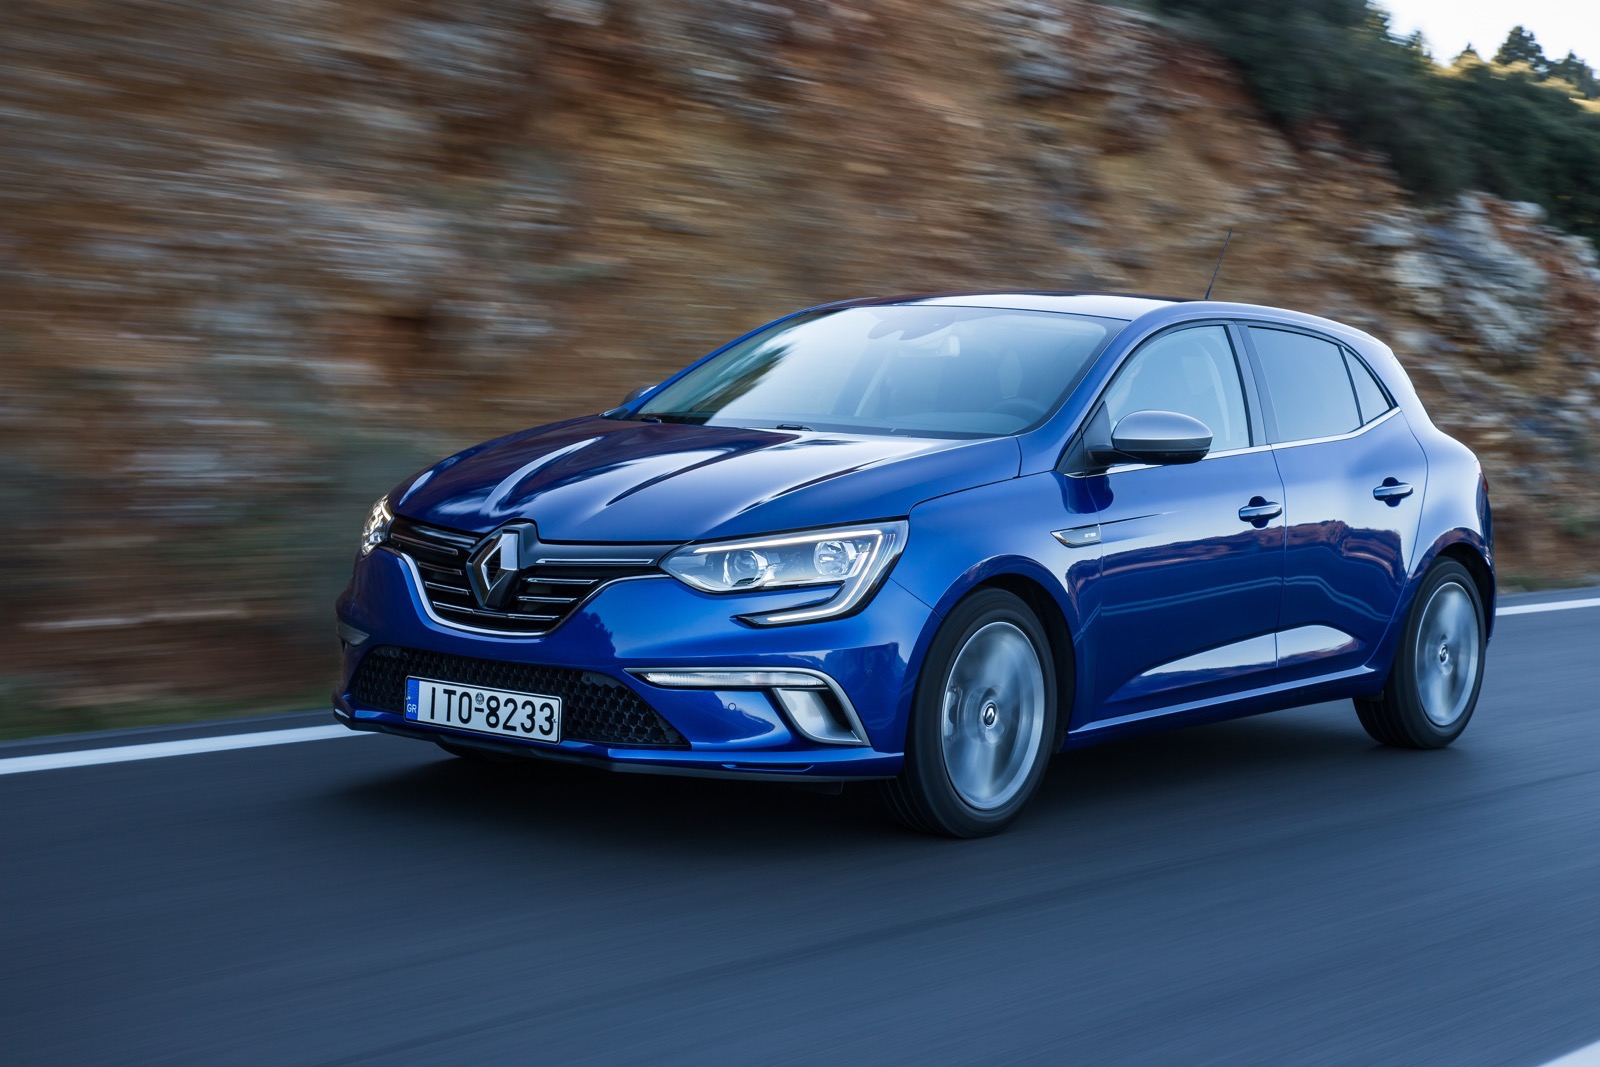 First_Drive_Renault_Megane_65